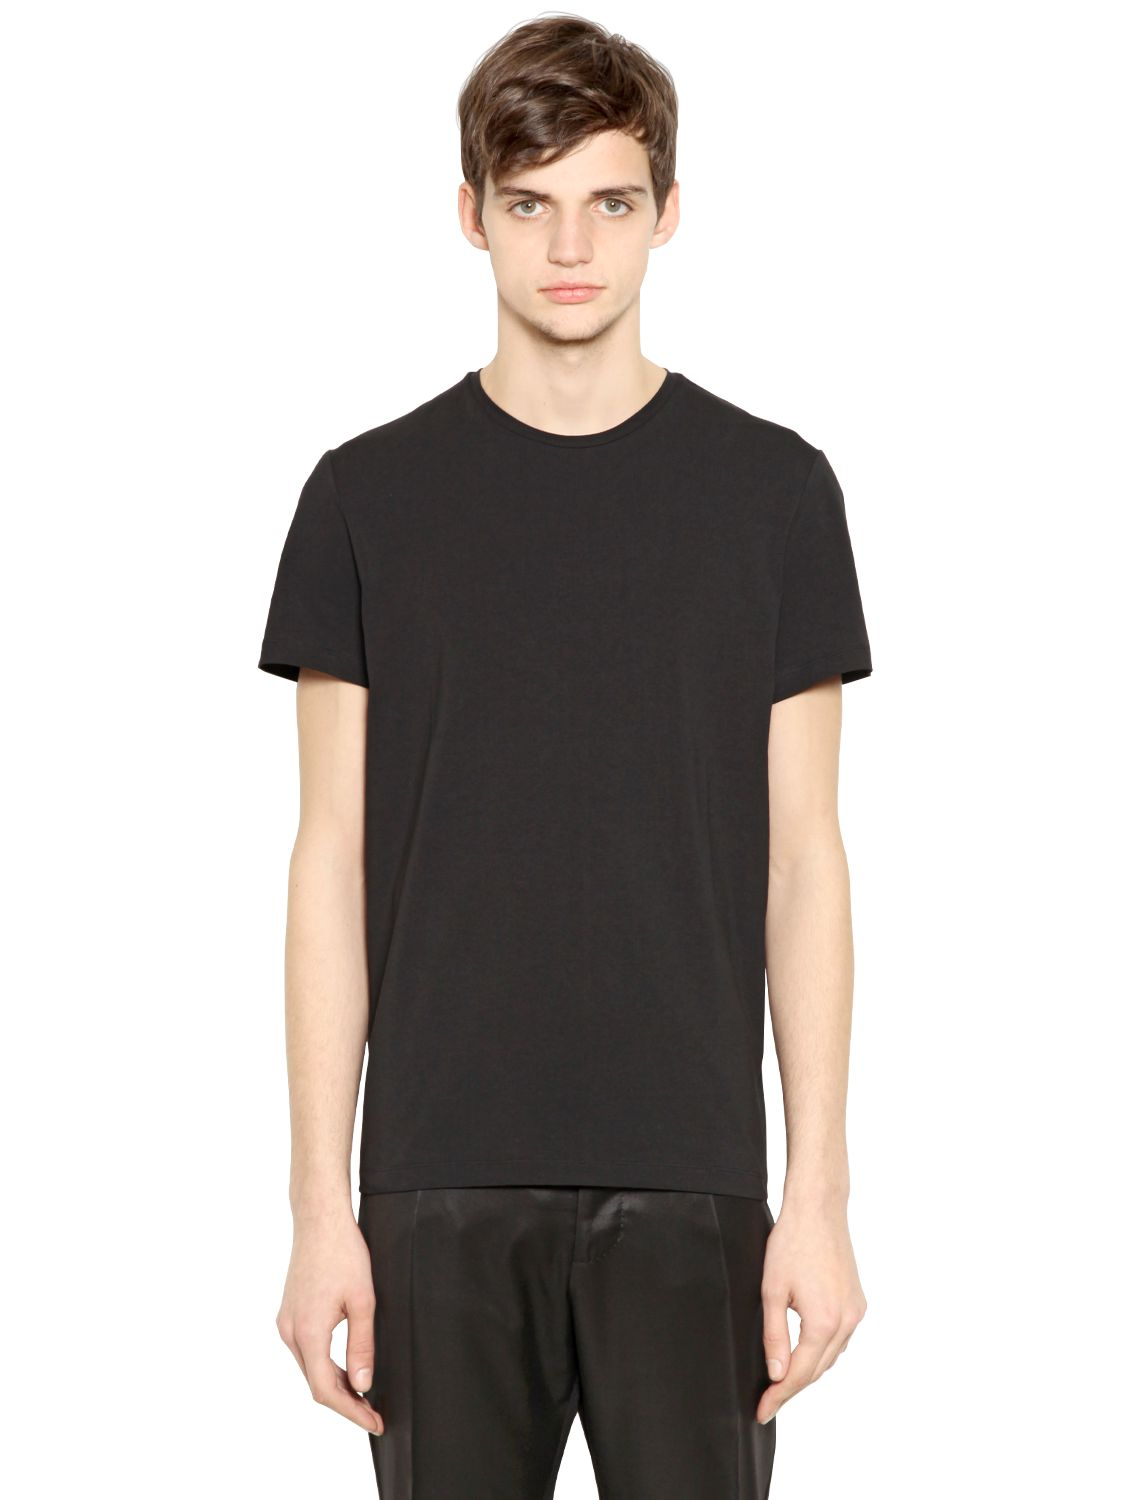 lyst jil sander stretch cotton t shirt in black for men. Black Bedroom Furniture Sets. Home Design Ideas